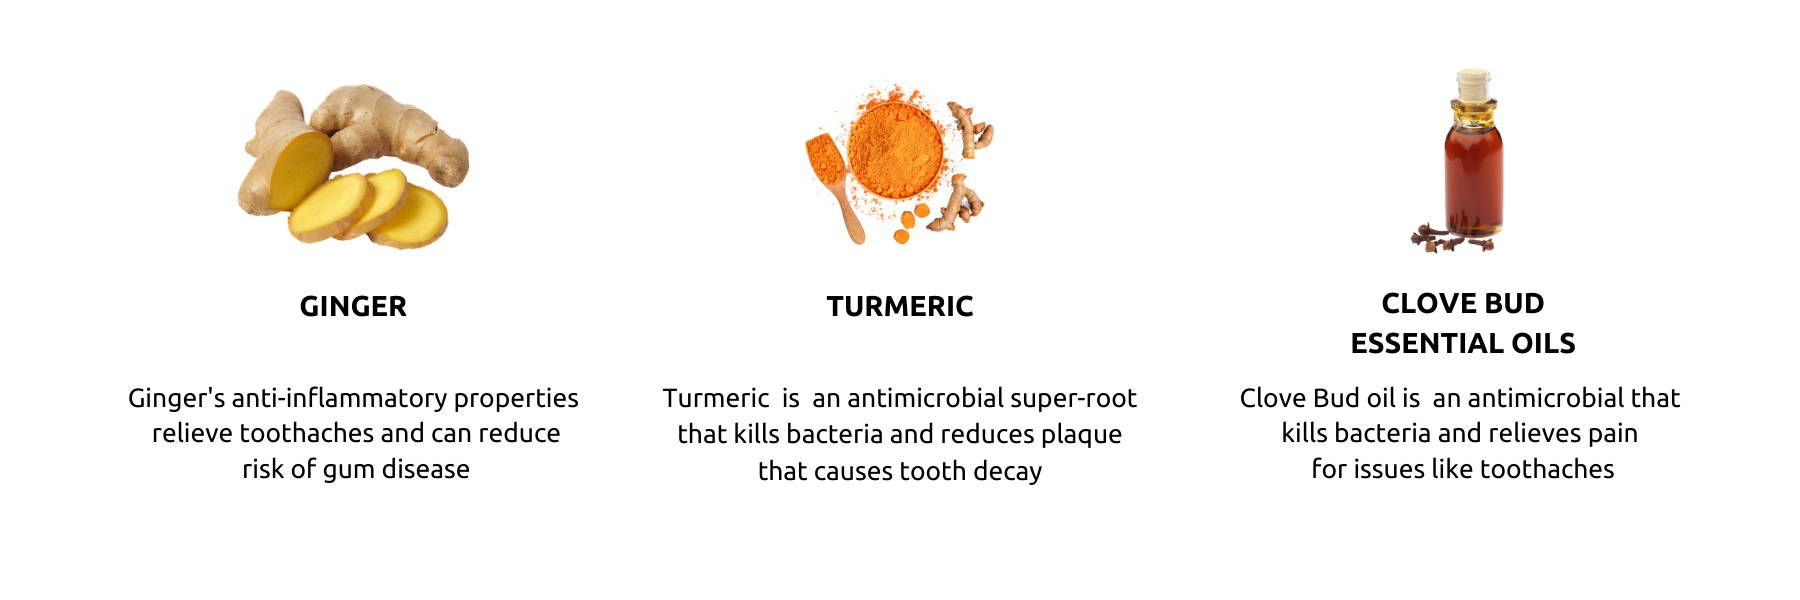 Our turmeric toothpaste flavor was inspired by two of our favorite natural remedies.